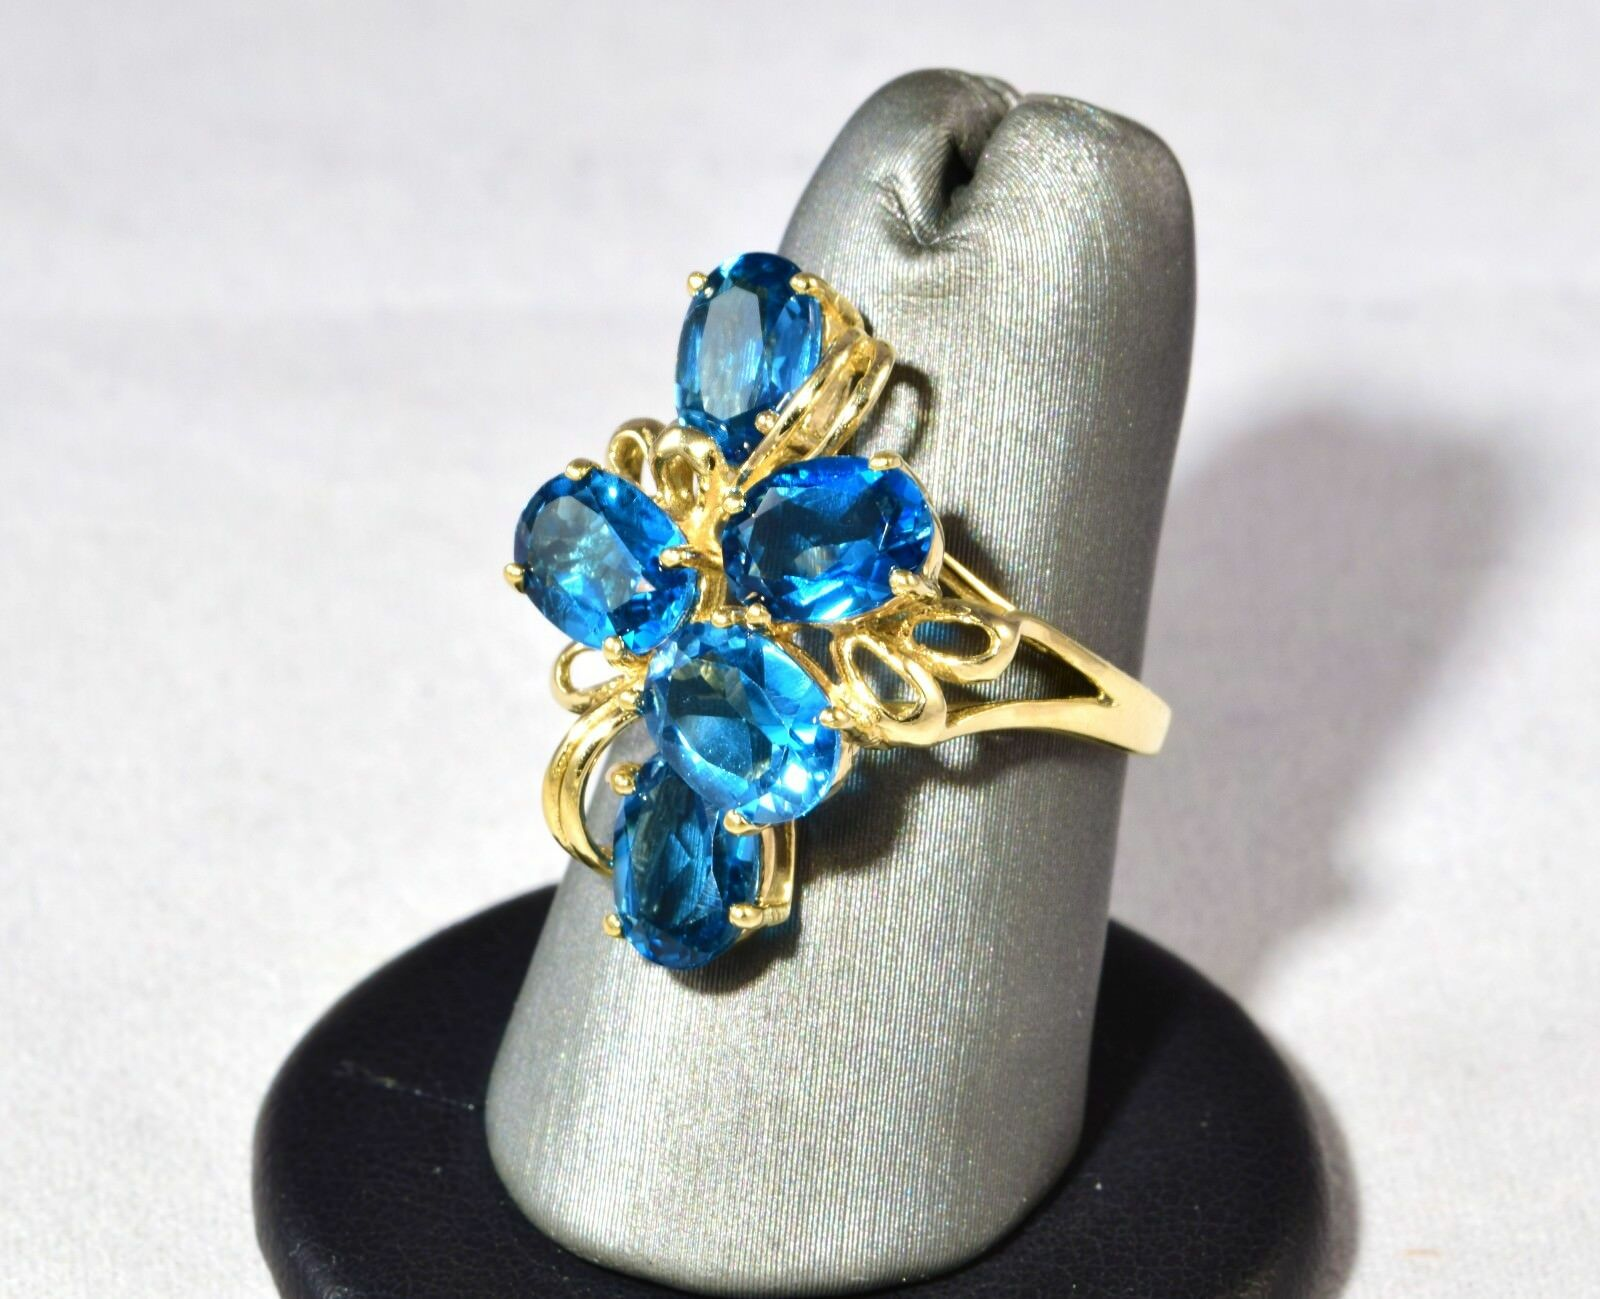 10K gold Sparkling blueee Topaz Ring Size 5.5 Mint Beautiful Estate